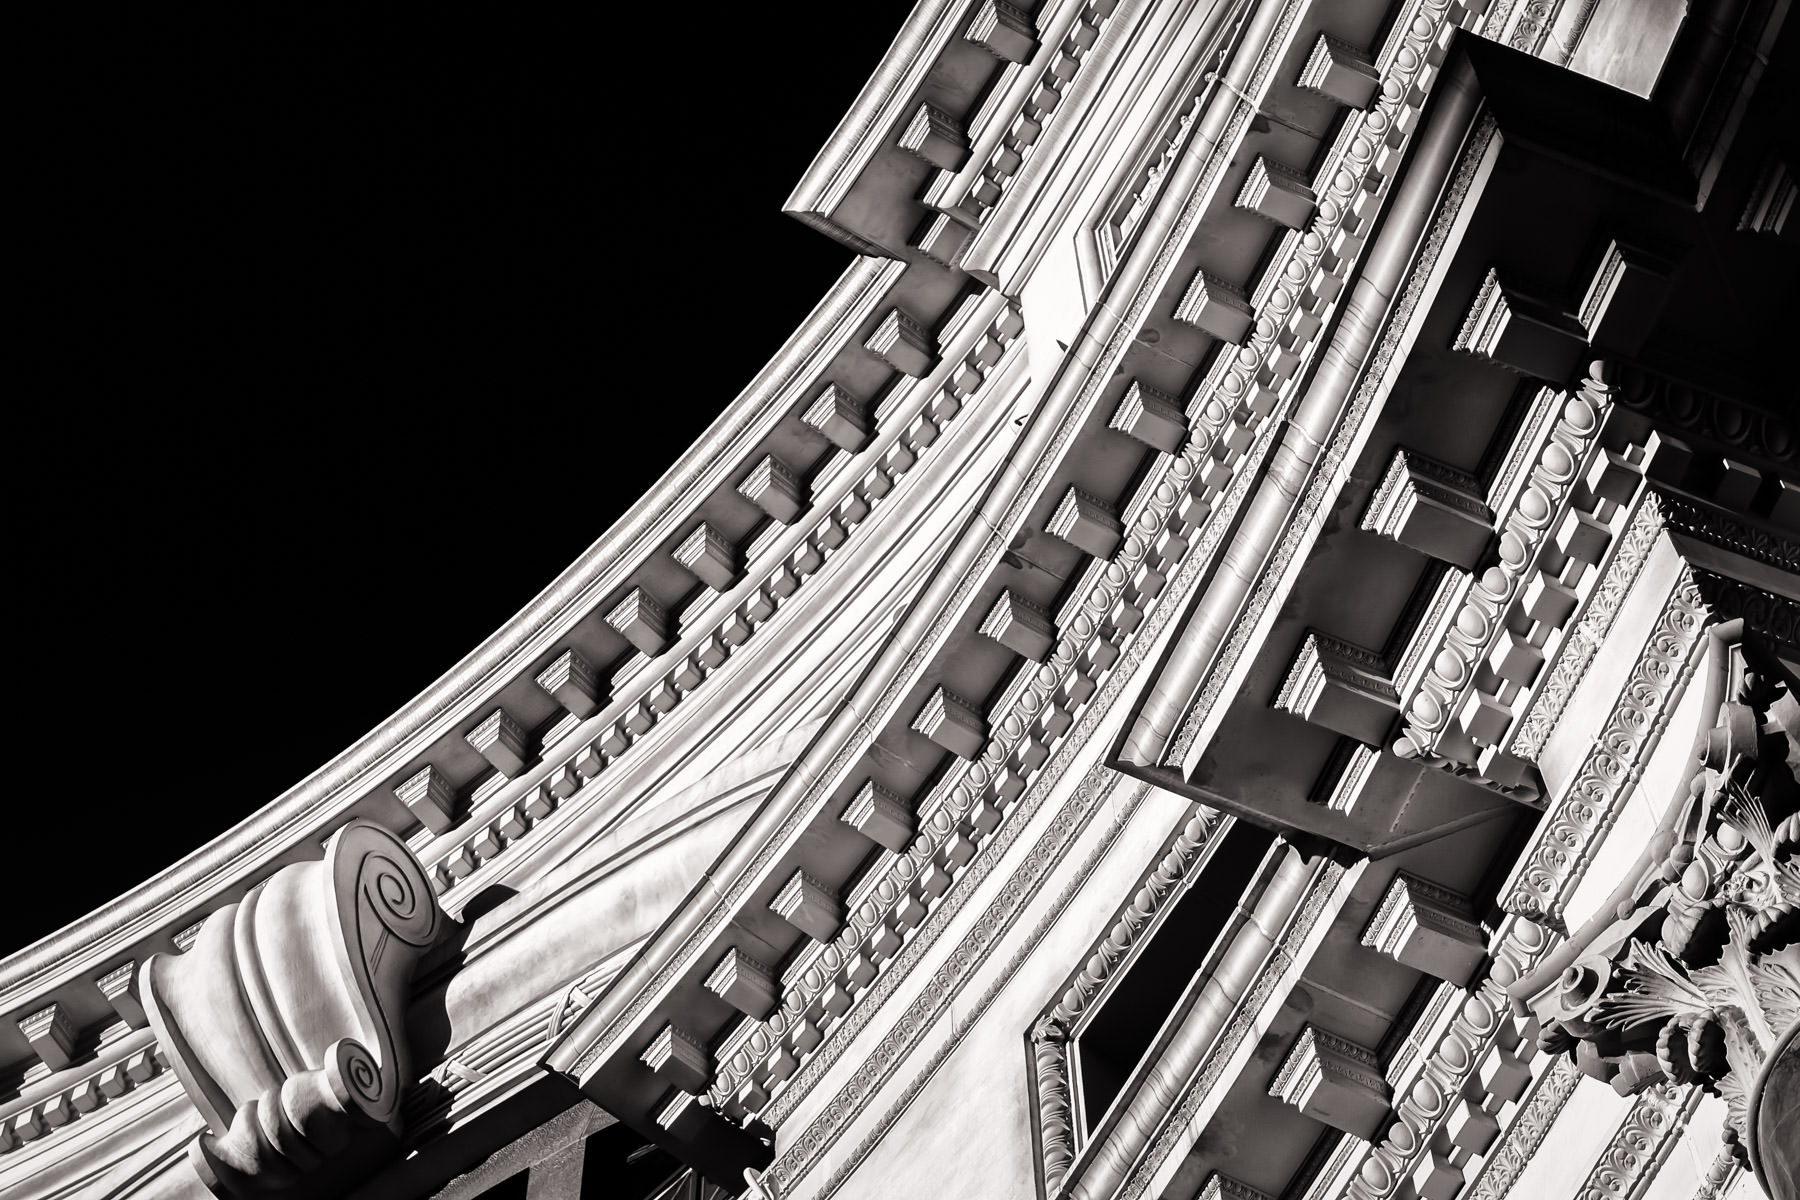 Architectural detail of the design above the main entrance of the Forum Shops at Caesars Palace, Las Vegas.